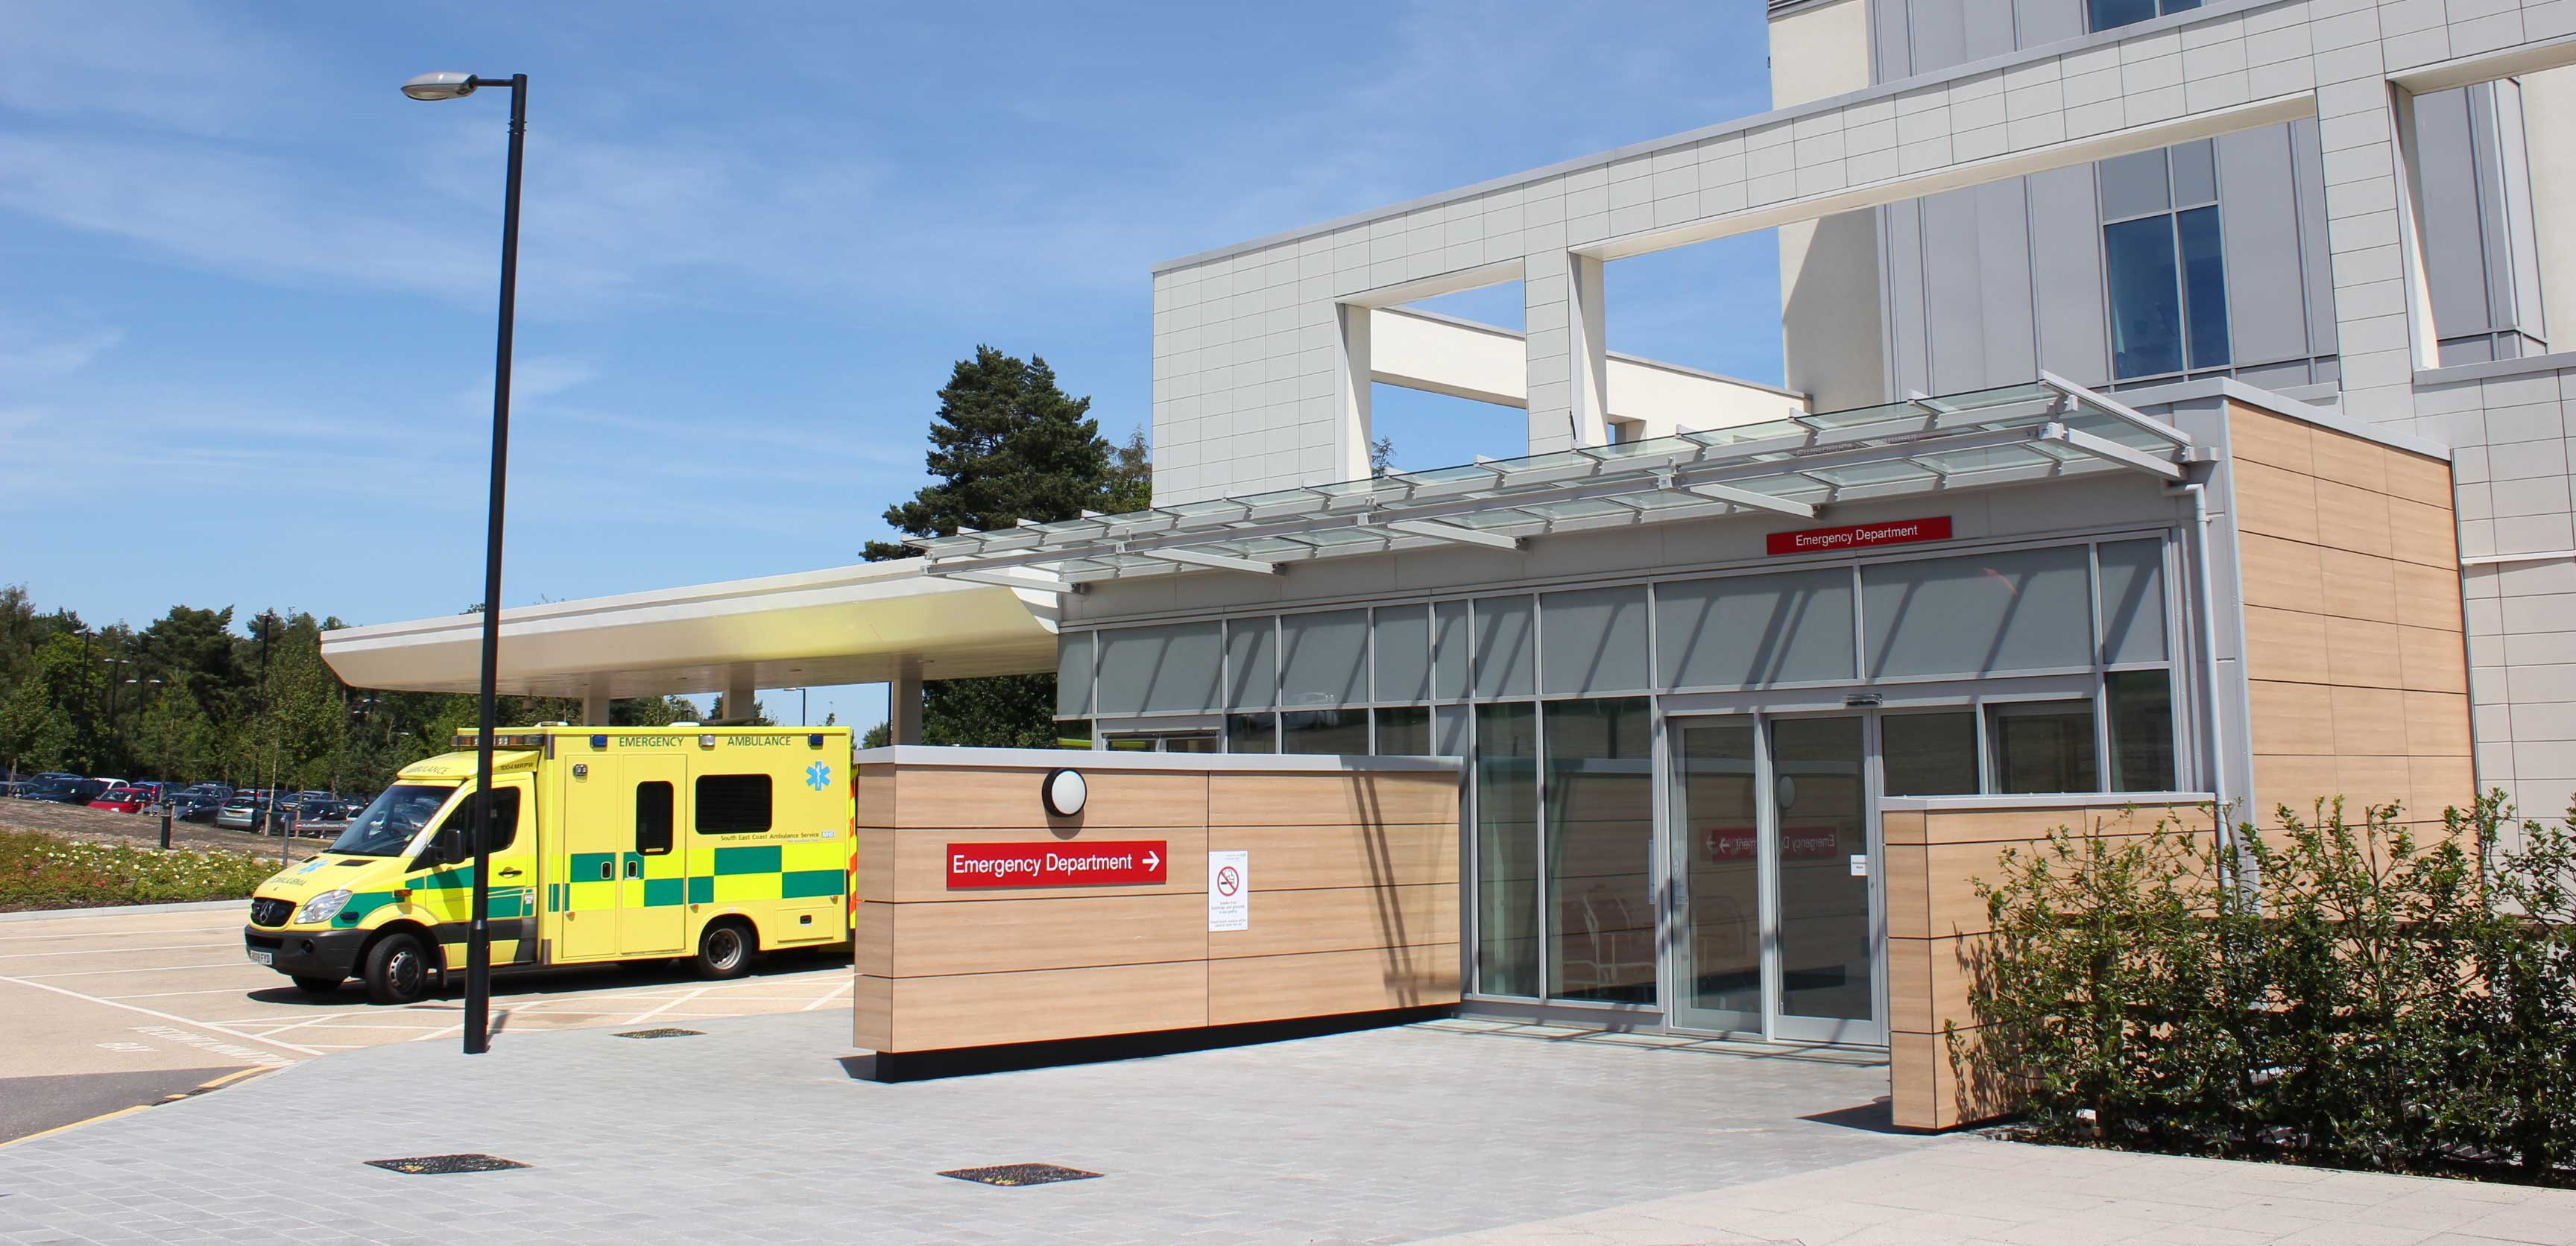 Accident and Emergency (A&E) - Maidstone and Tunbridge